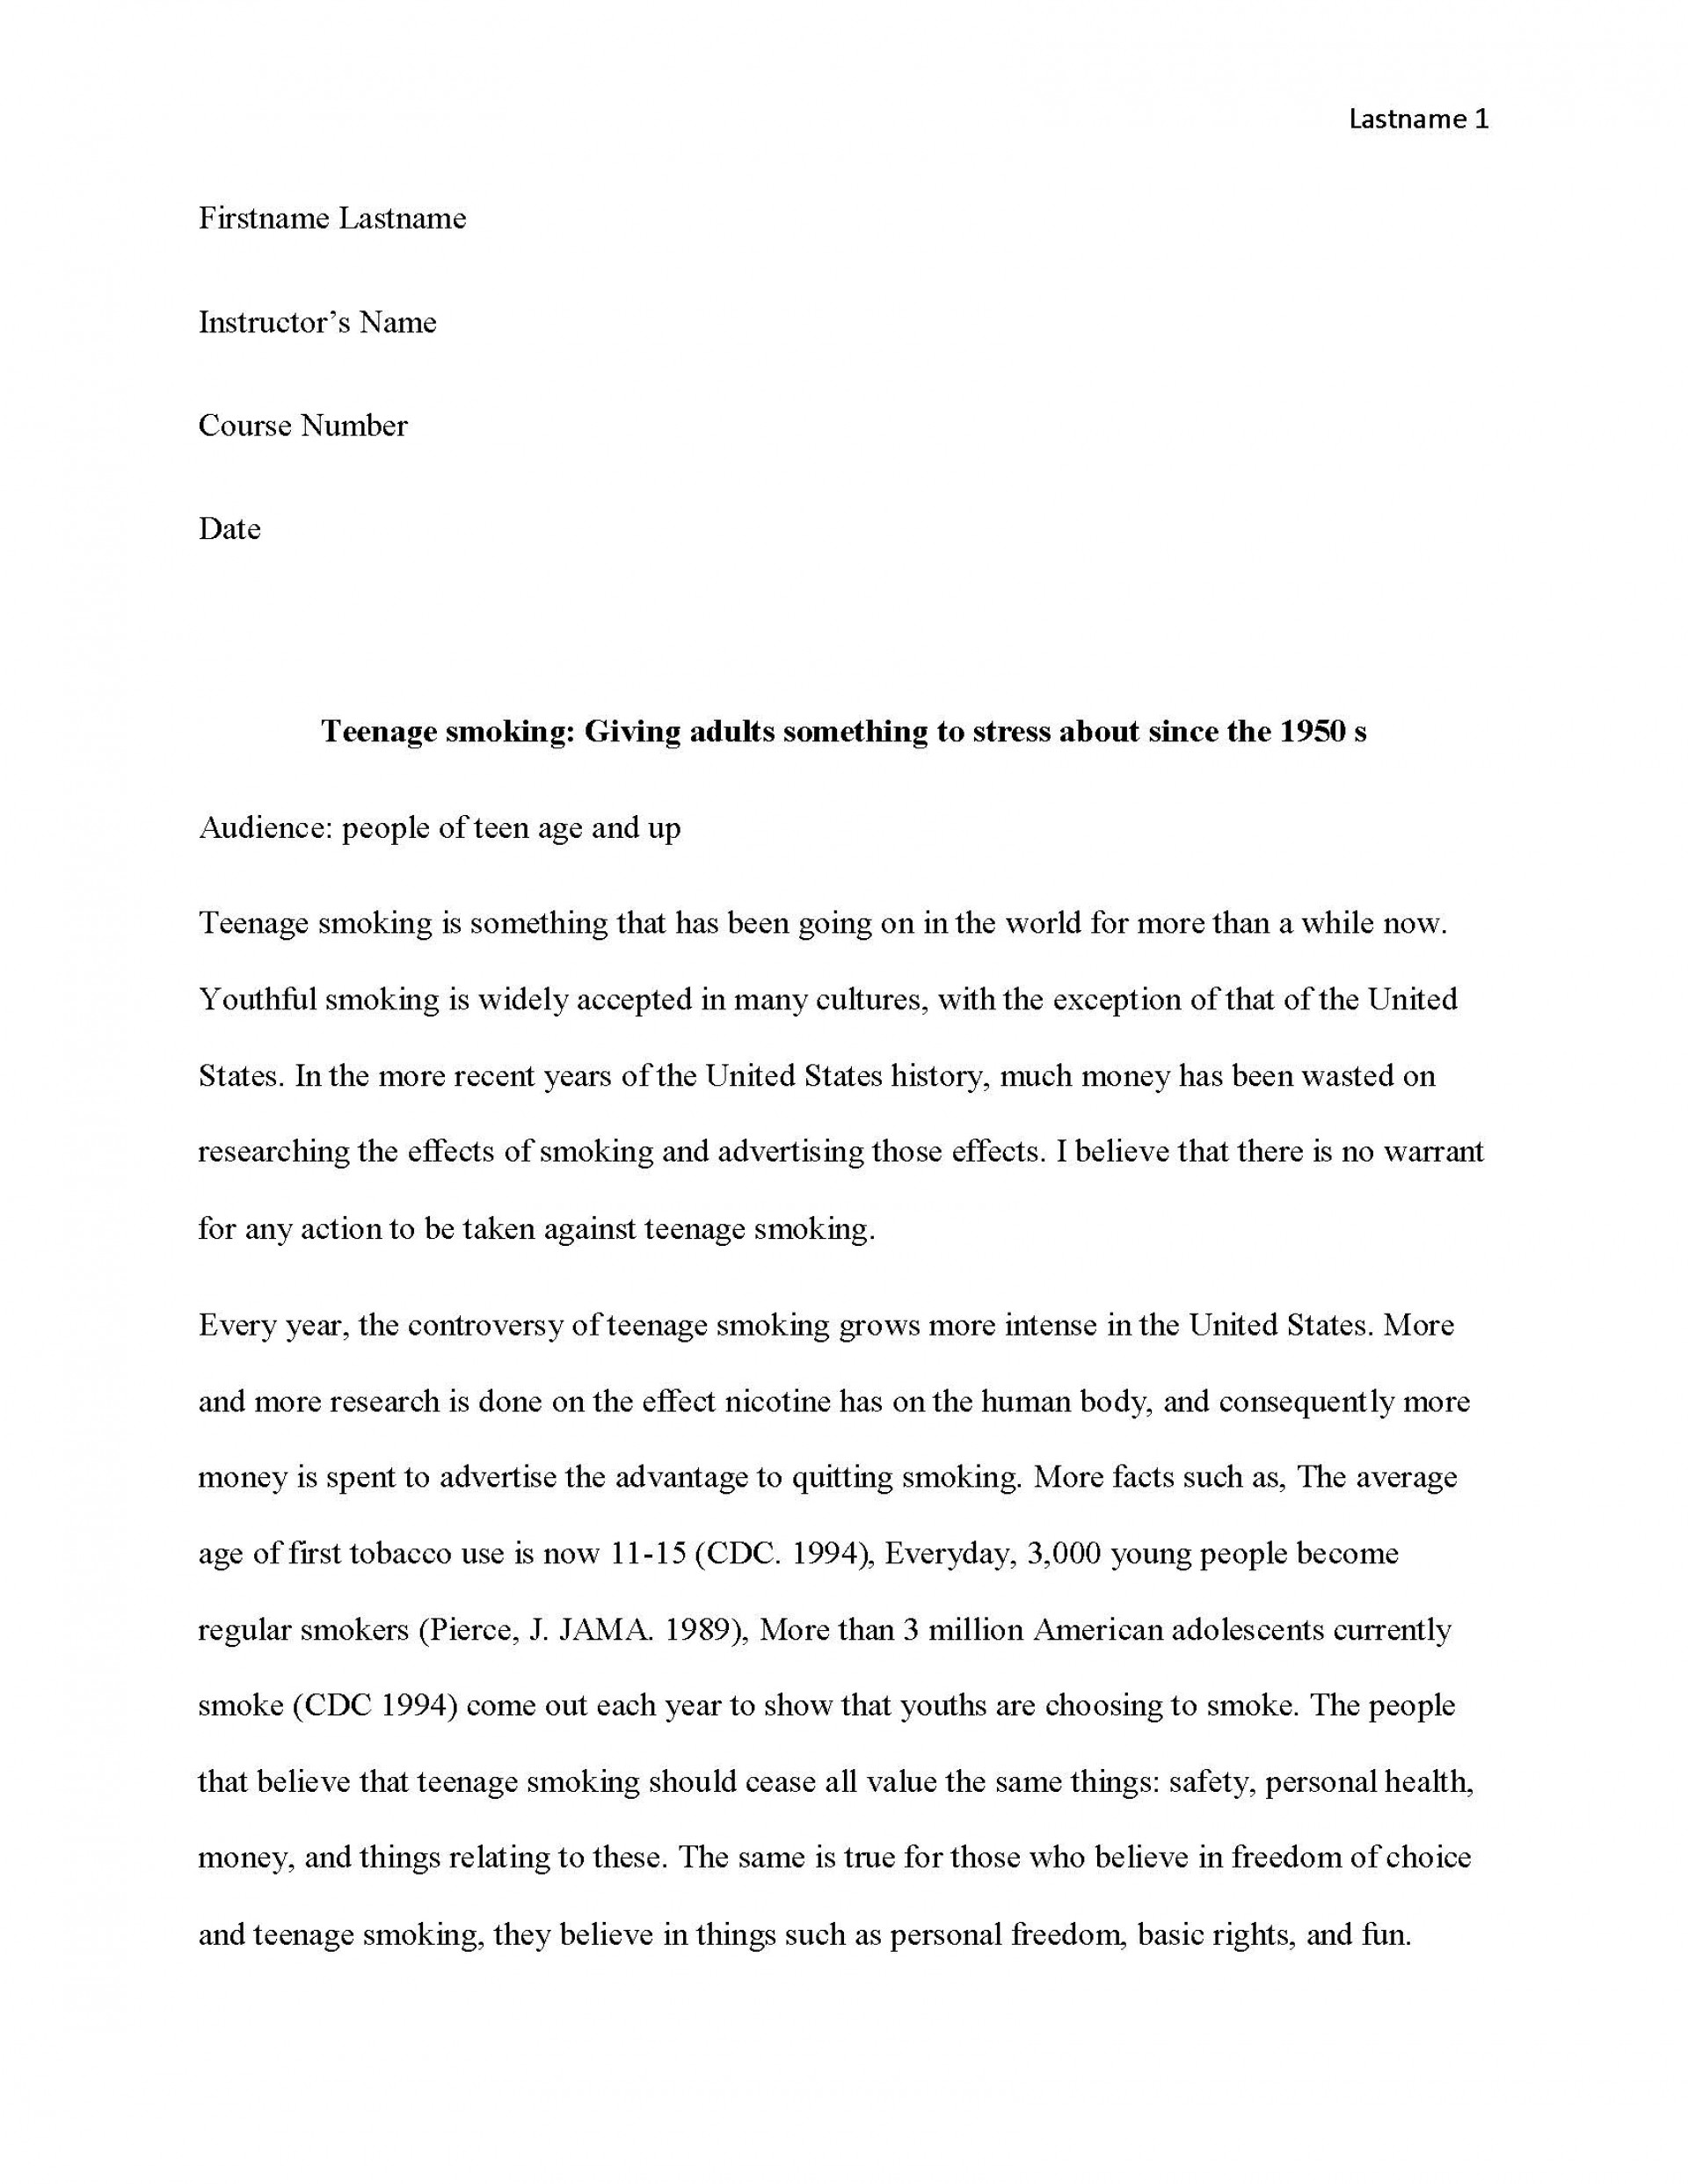 015 Peace Essay Teen Smoking Free Sample Page 1 Rare In Simple English Contest 2019 Topics 1920